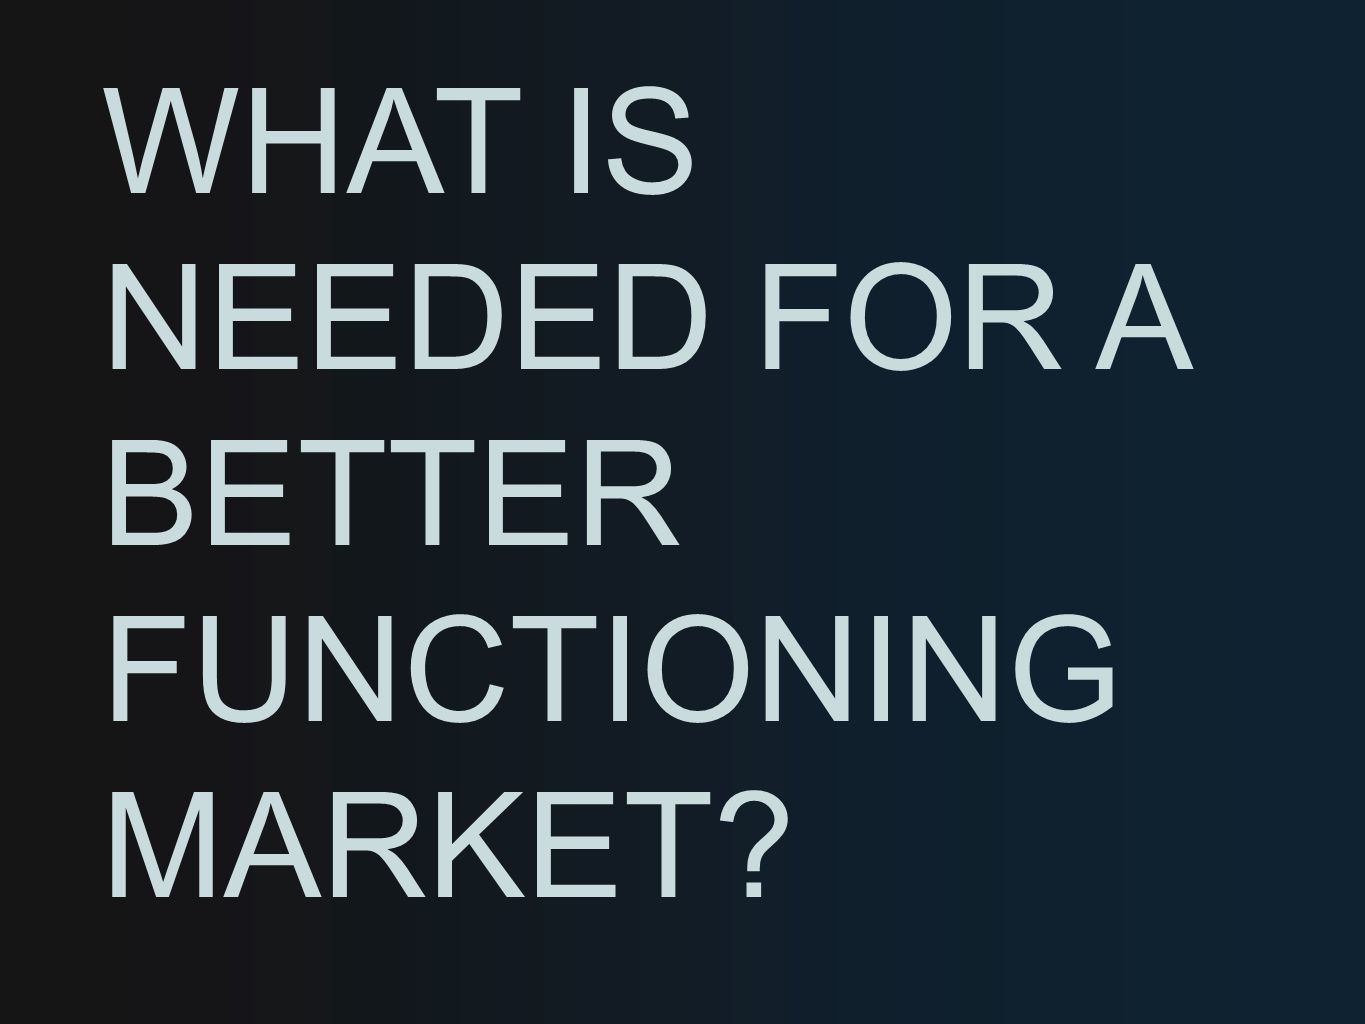 WHAT IS NEEDED FOR A BETTER FUNCTIONING MARKET